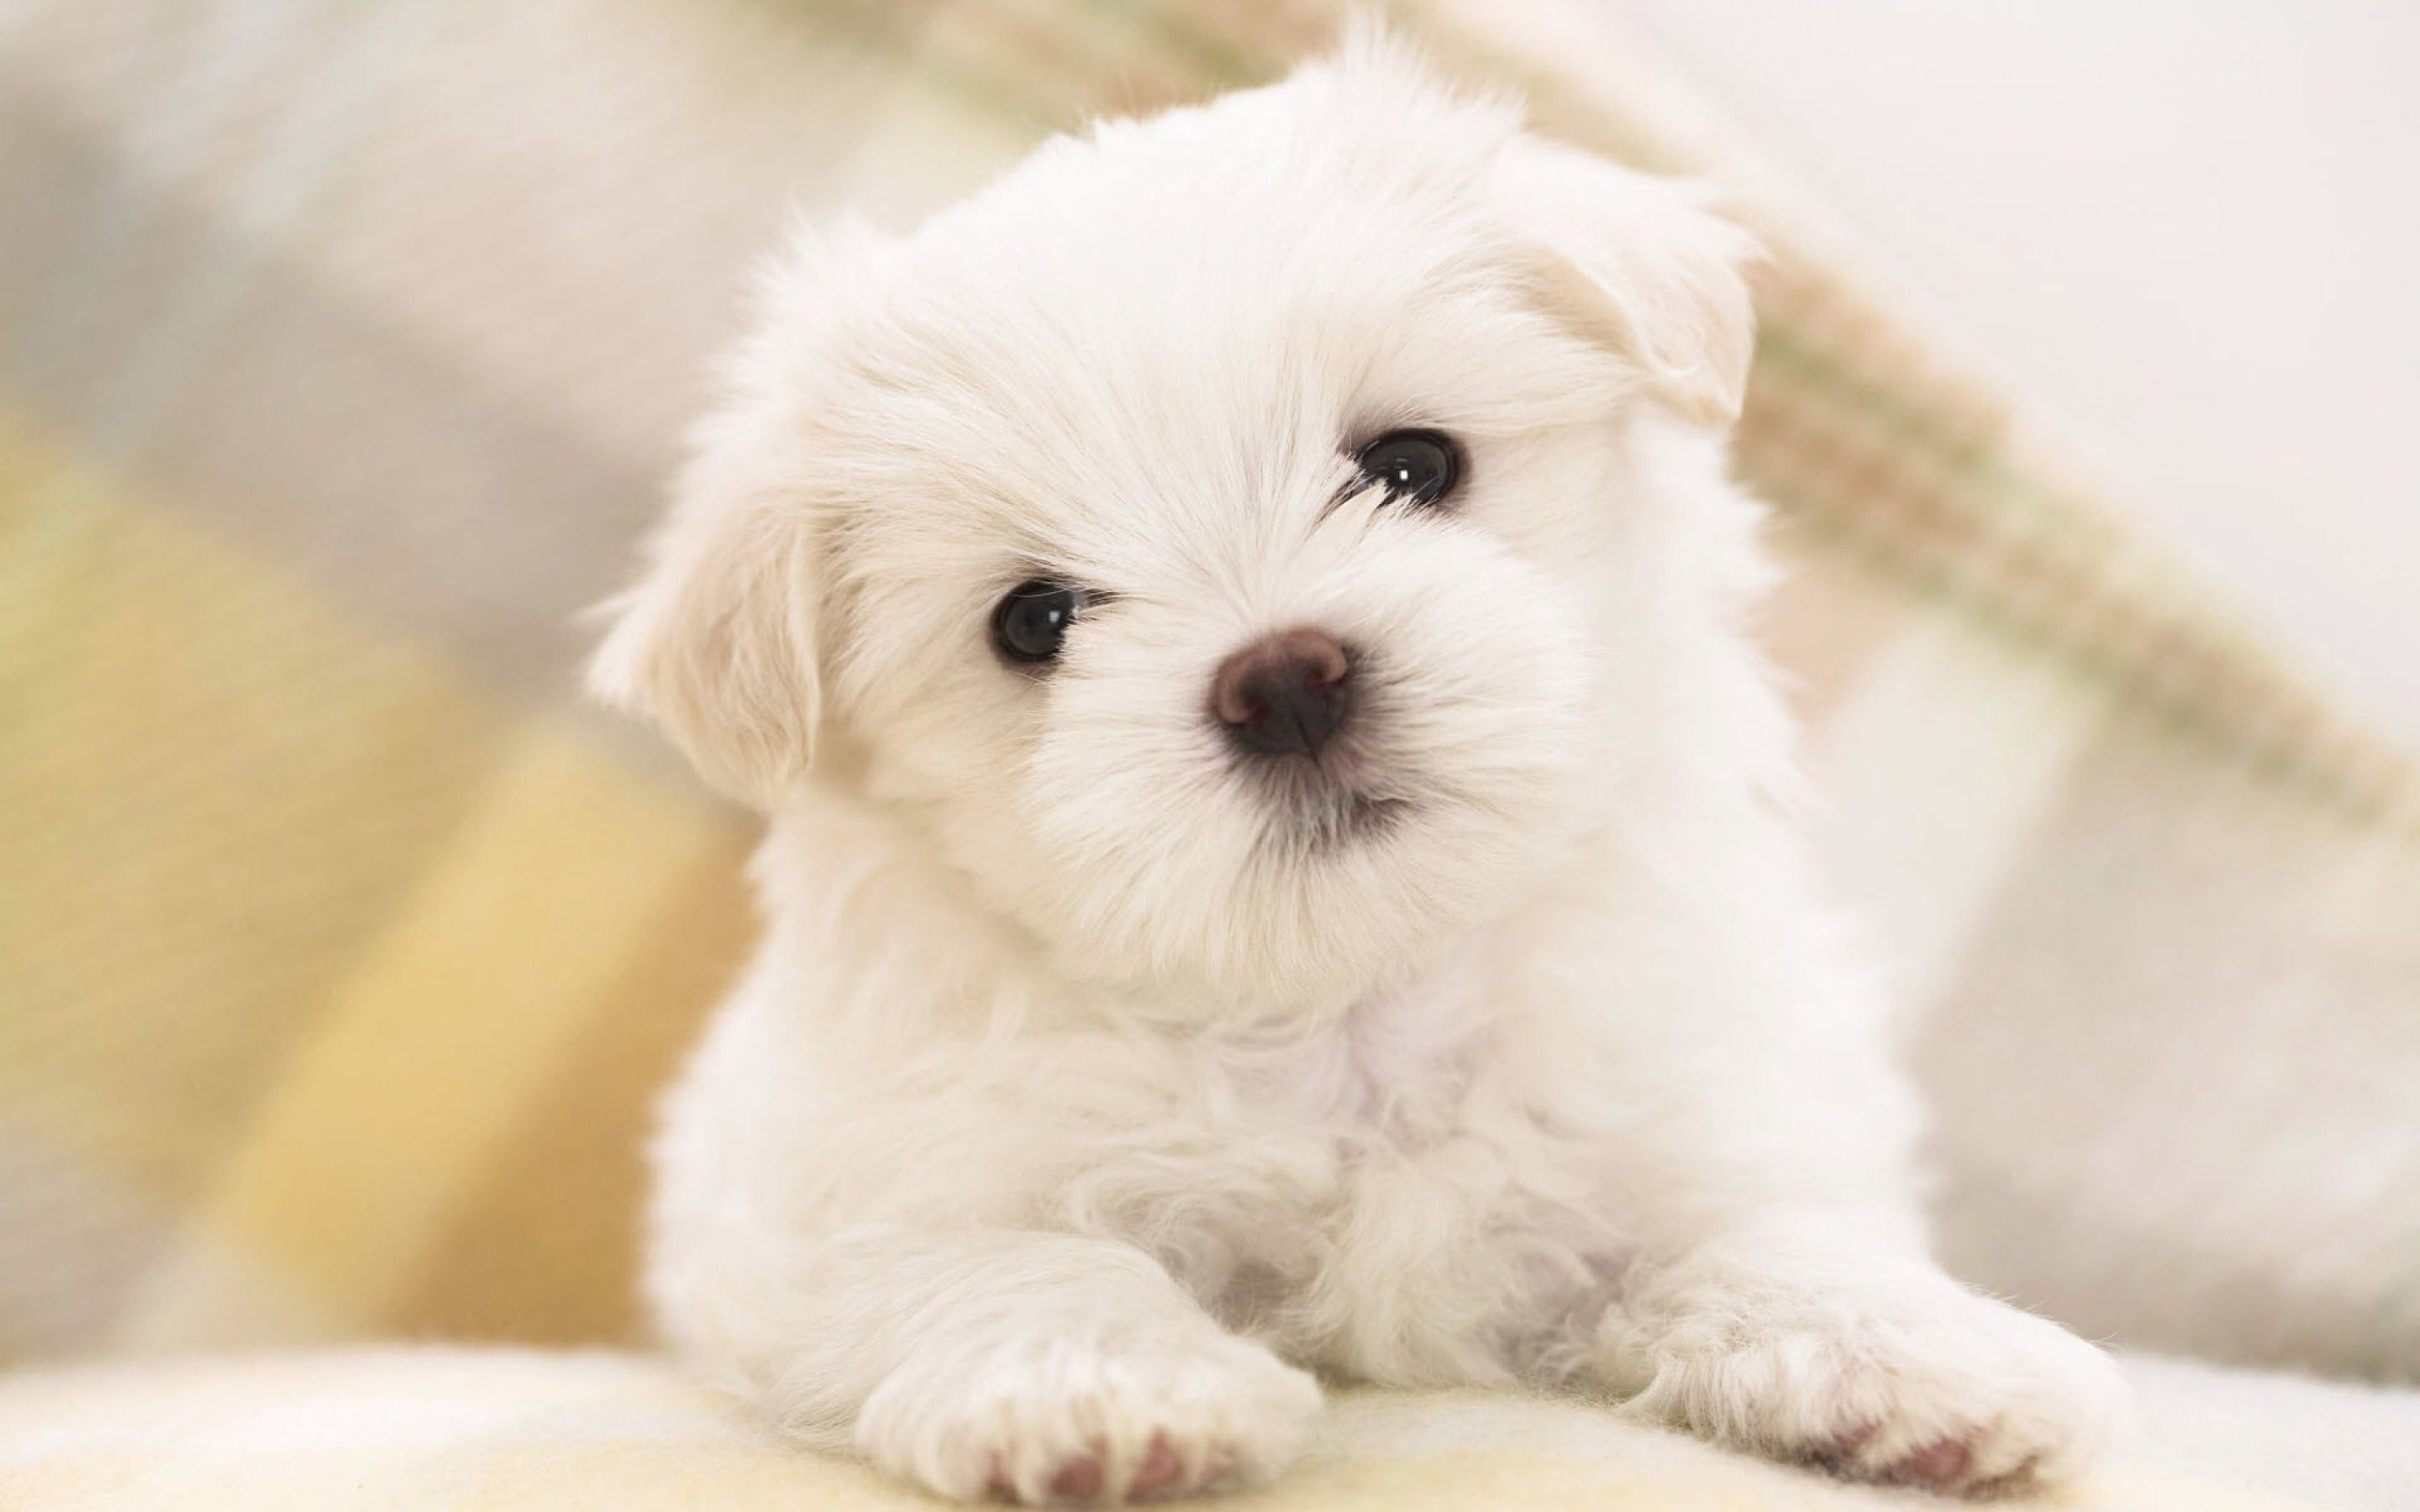 Puppies Wallpaper Free Download